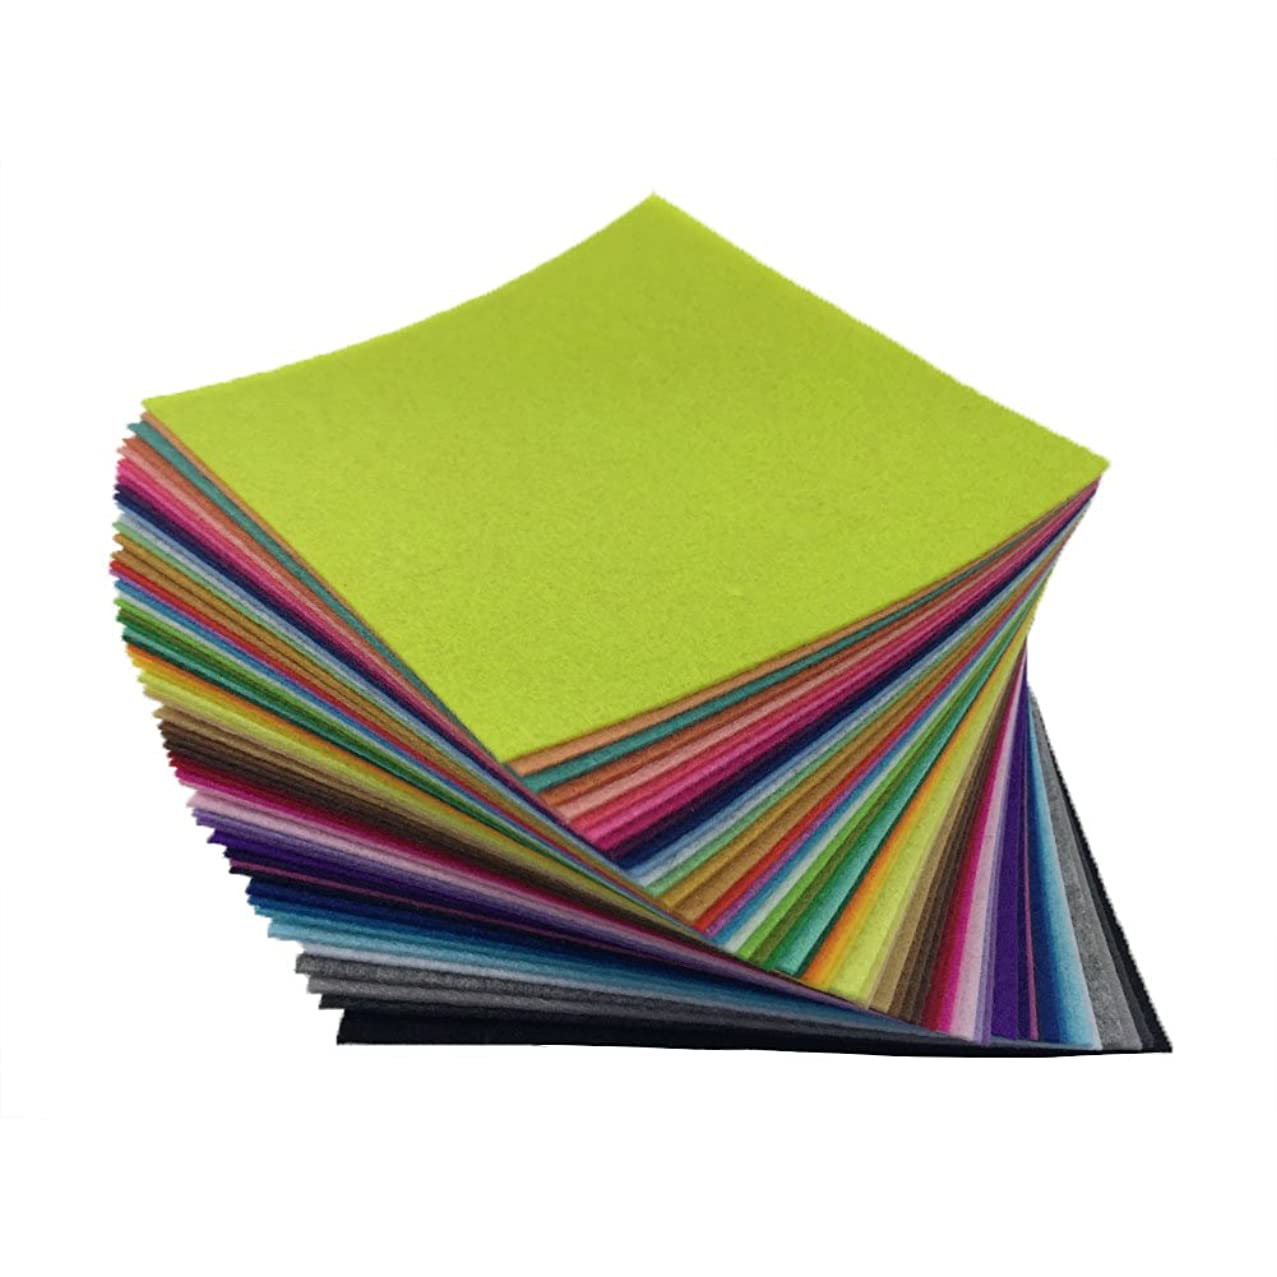 flic-flac 54pcs Felt Fabric Sheet Assorted Color Felt Pack DIY Craft Squares Nonwoven (30cm30cm)